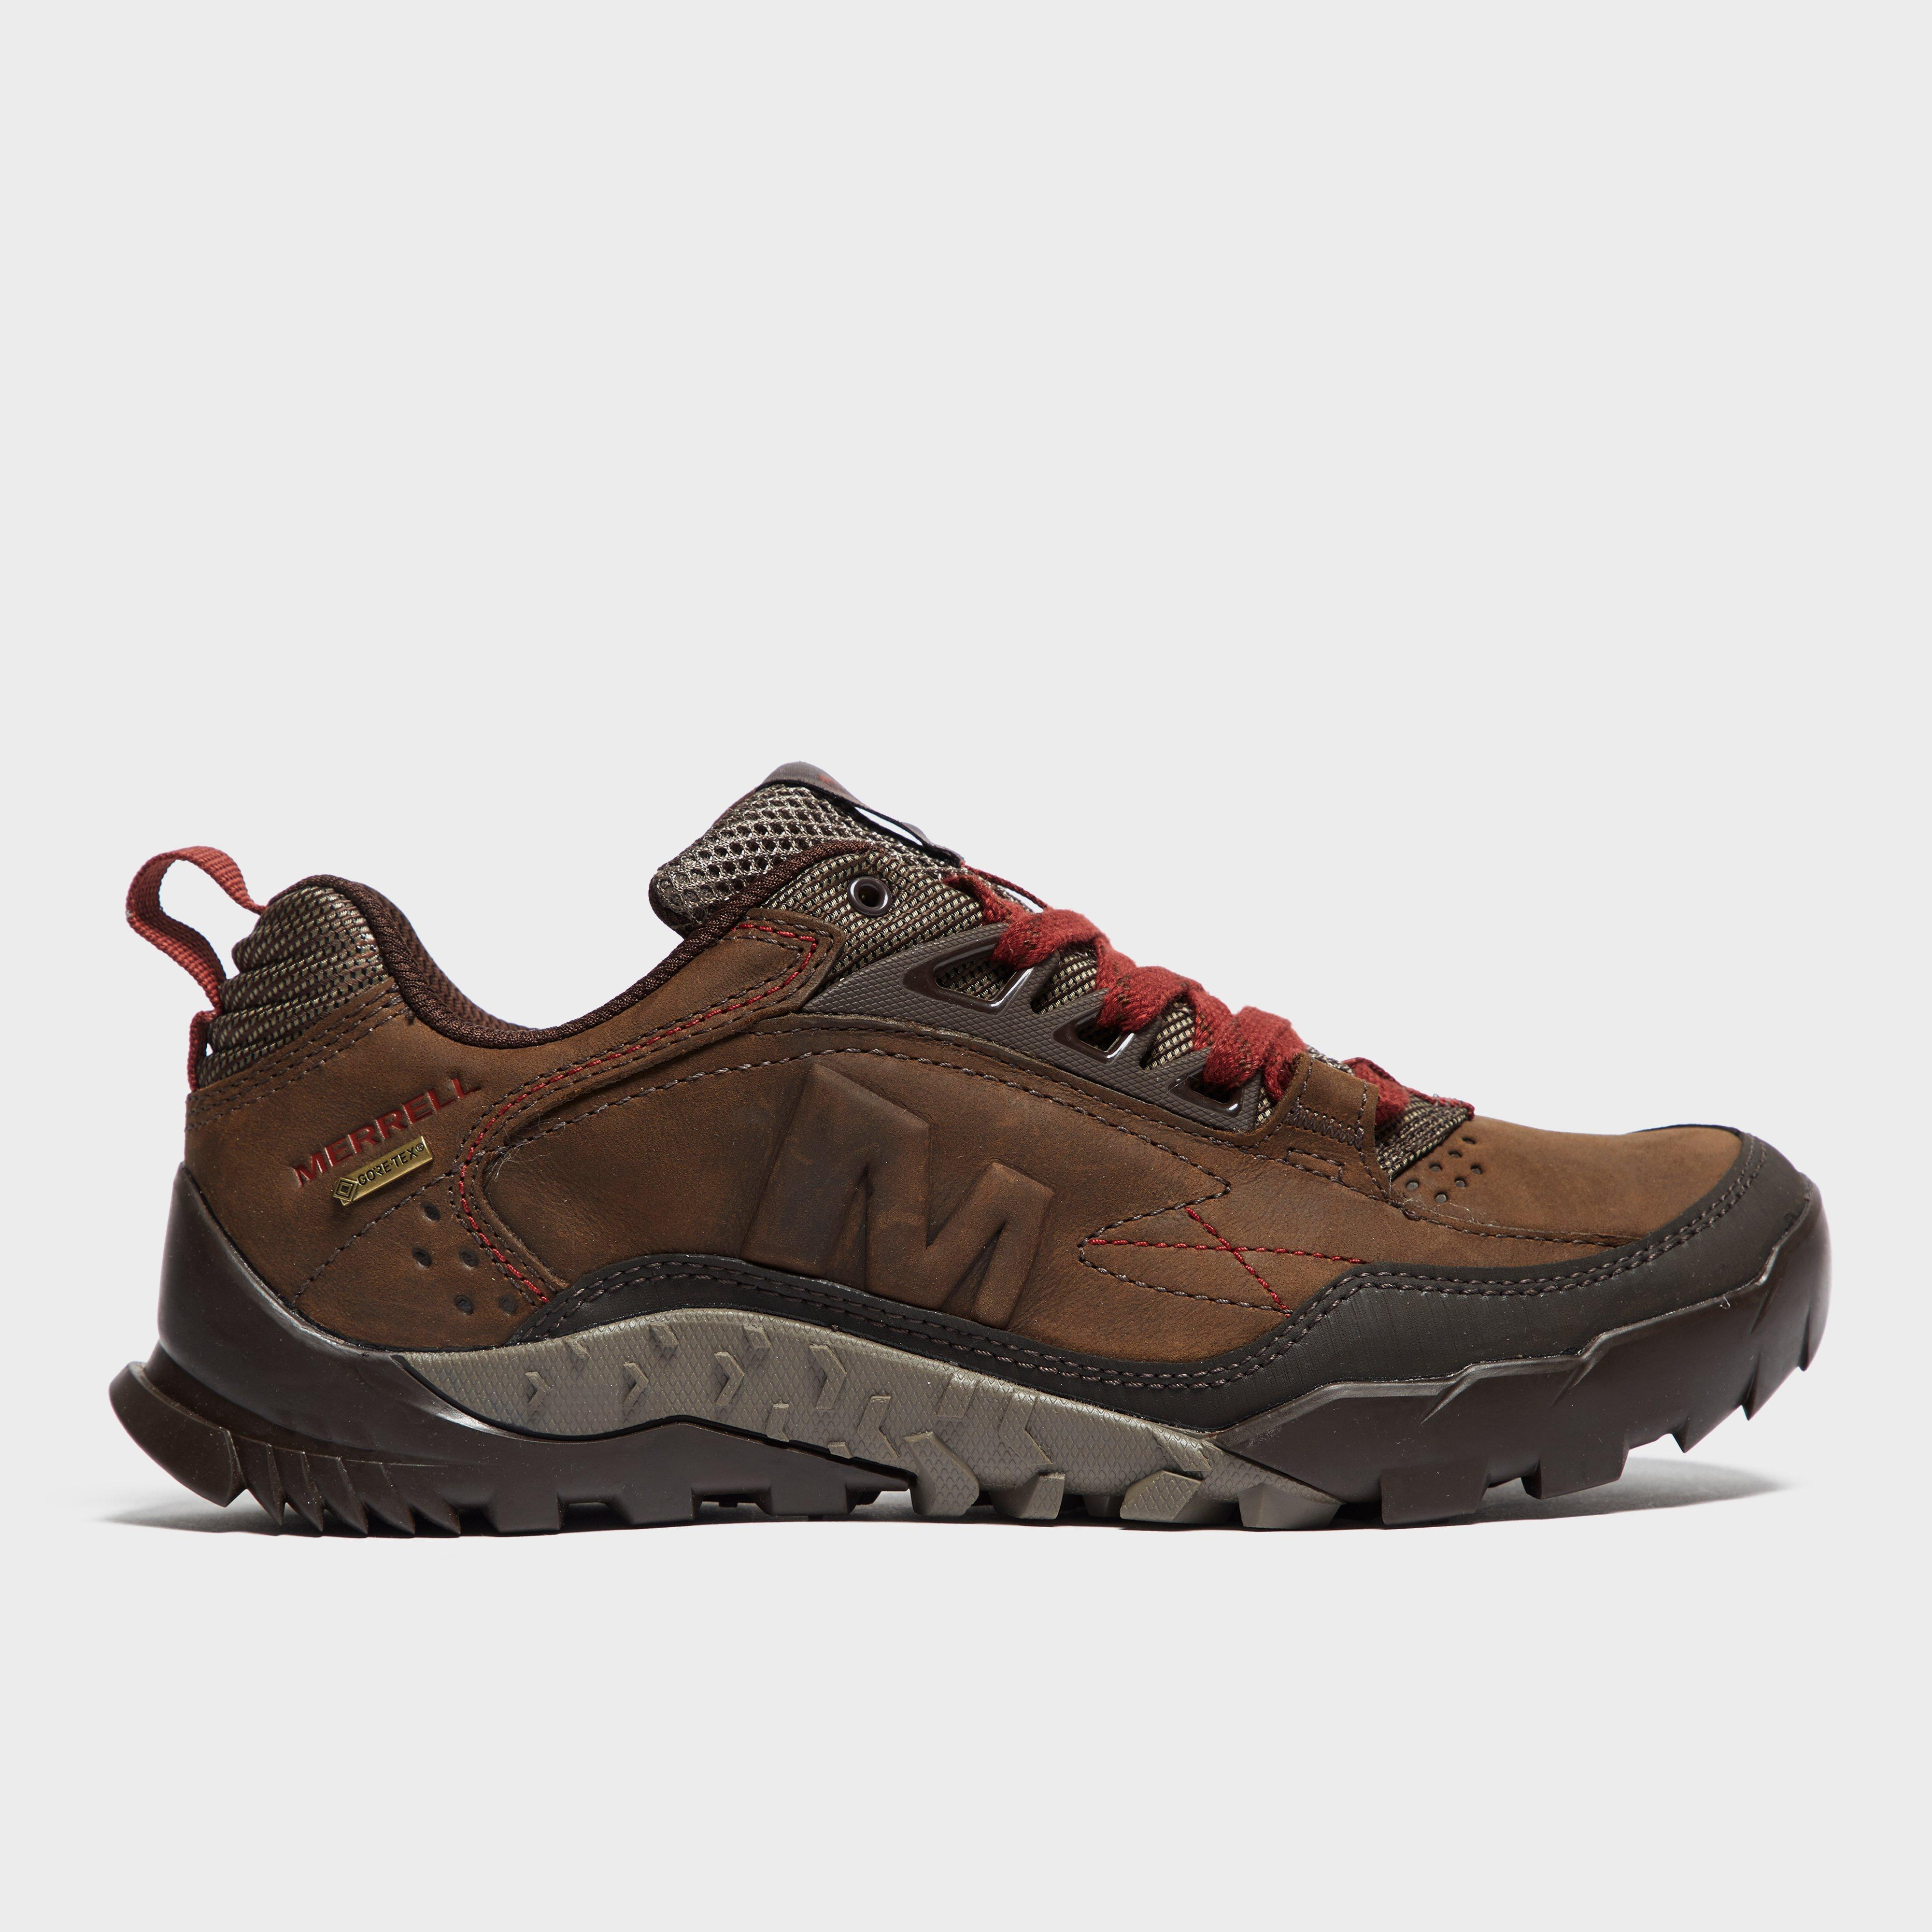 Discontinued Merrell Shoes Sale